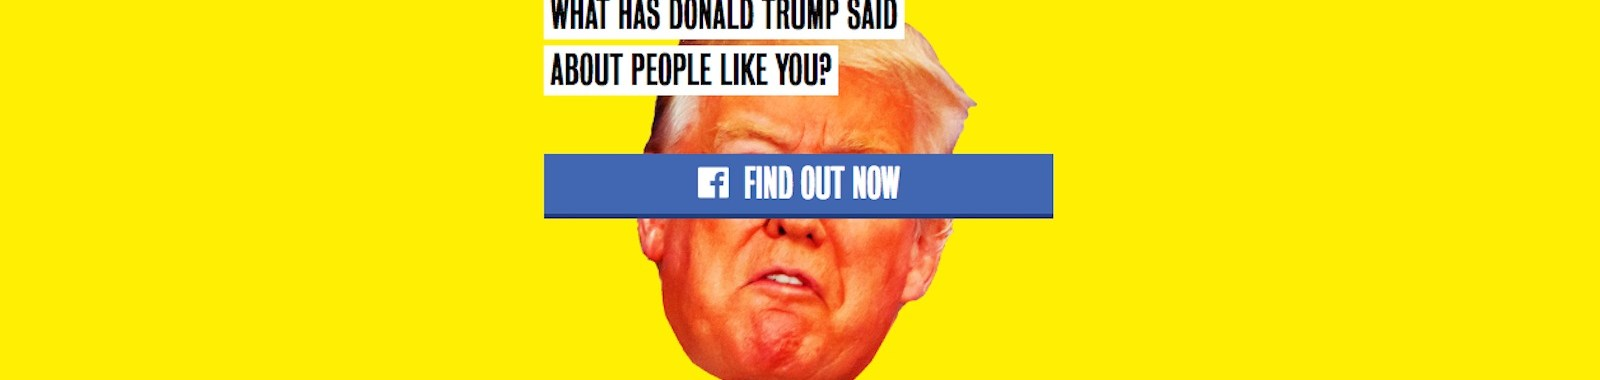 trumpify-yourself